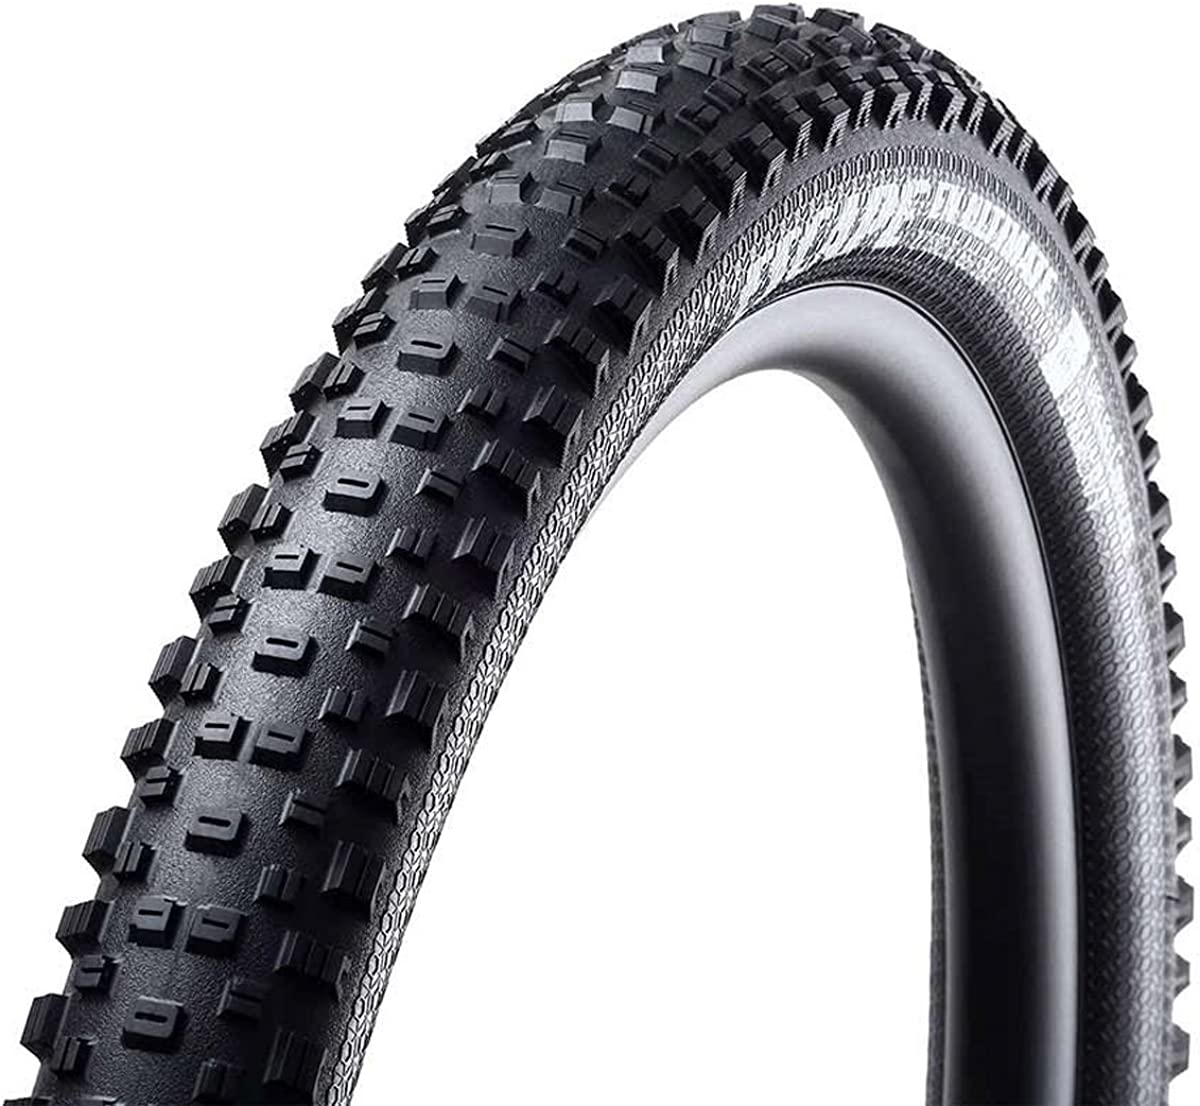 Goodyear Escape Tire, 27.5''x2.35'', Folding, Tubeless Ready, Dynamic:R/T, Ultimate, 120TPI, Black